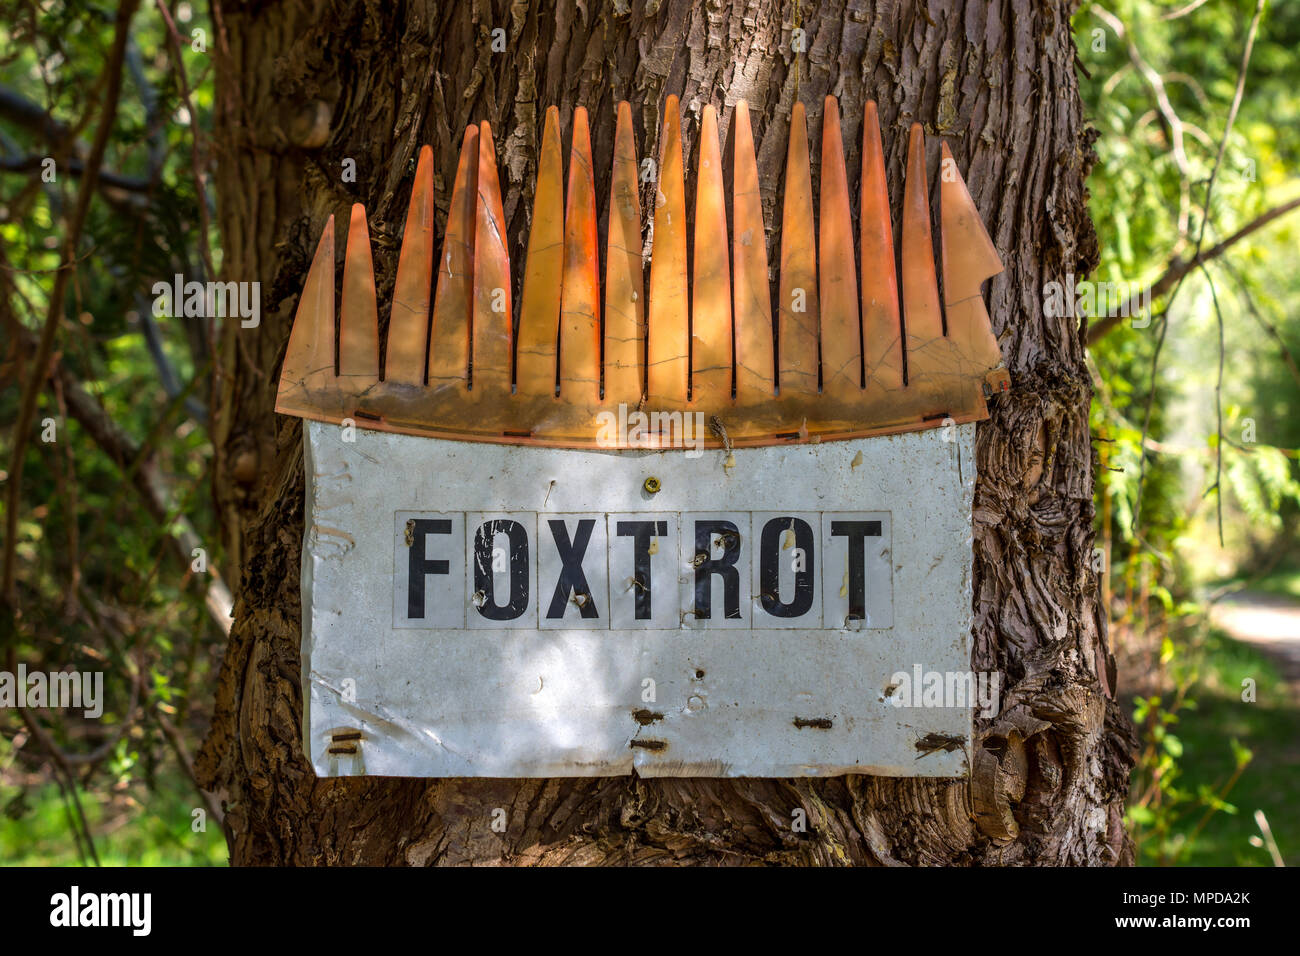 'Foxtrot' house name sign, Hornby Island, BC, Canada. - Stock Image